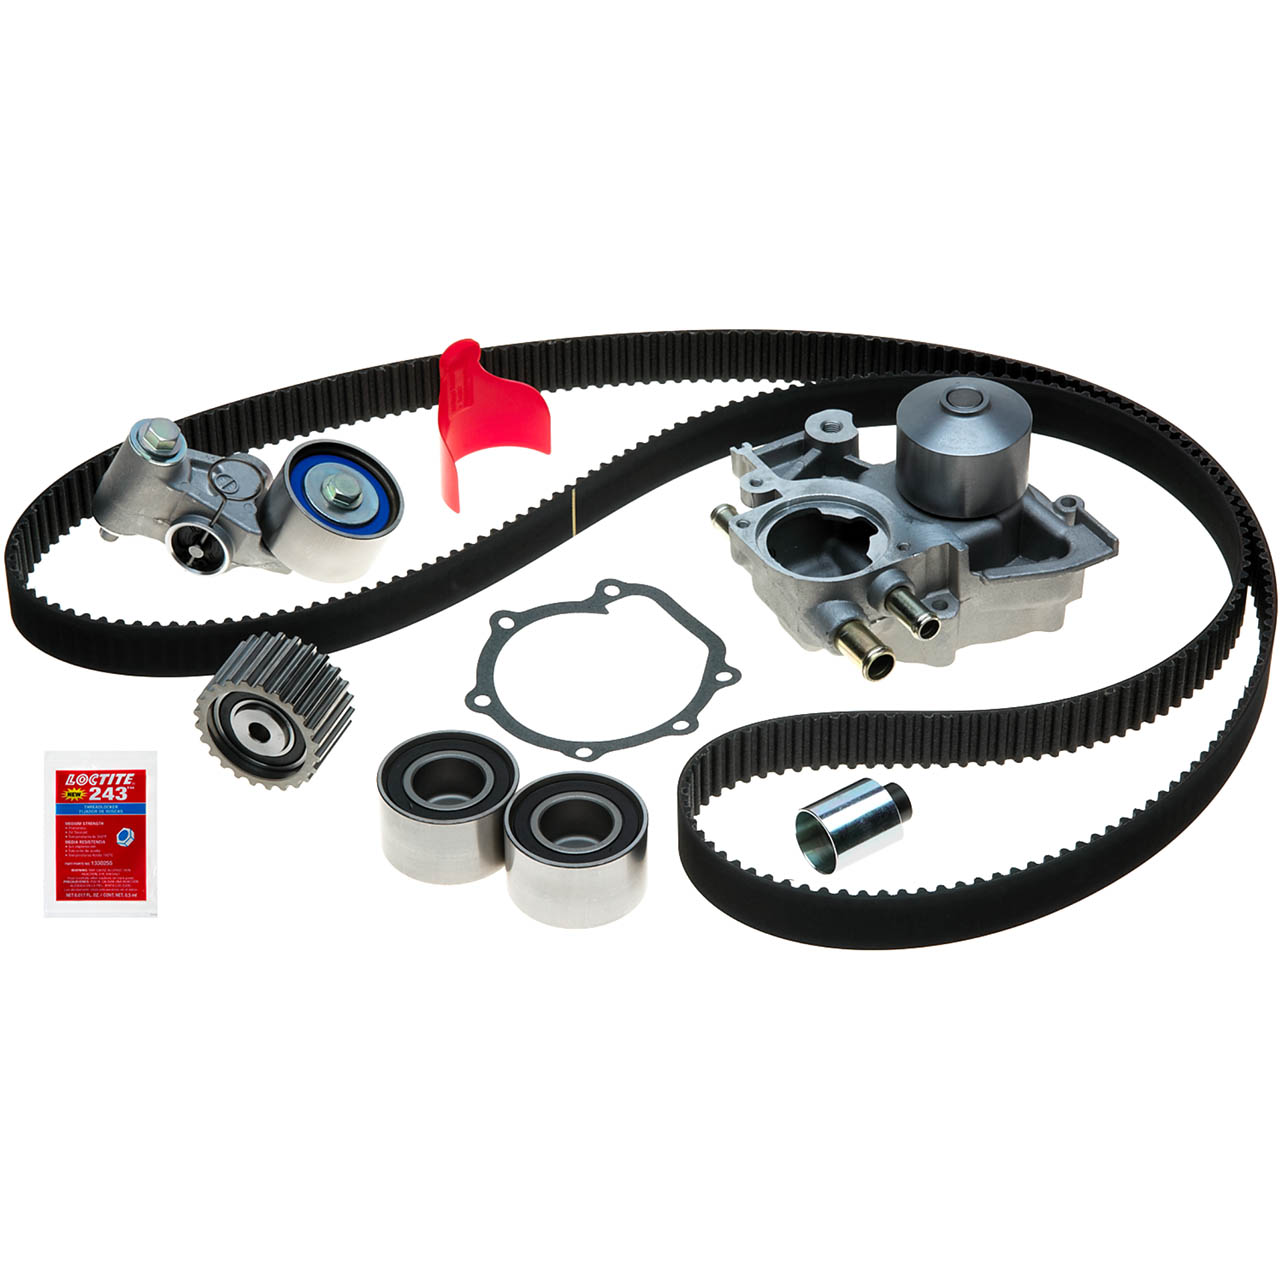 Gates Timing Belt Replacement Kit w/ Water Pump, '02-'03 WRX